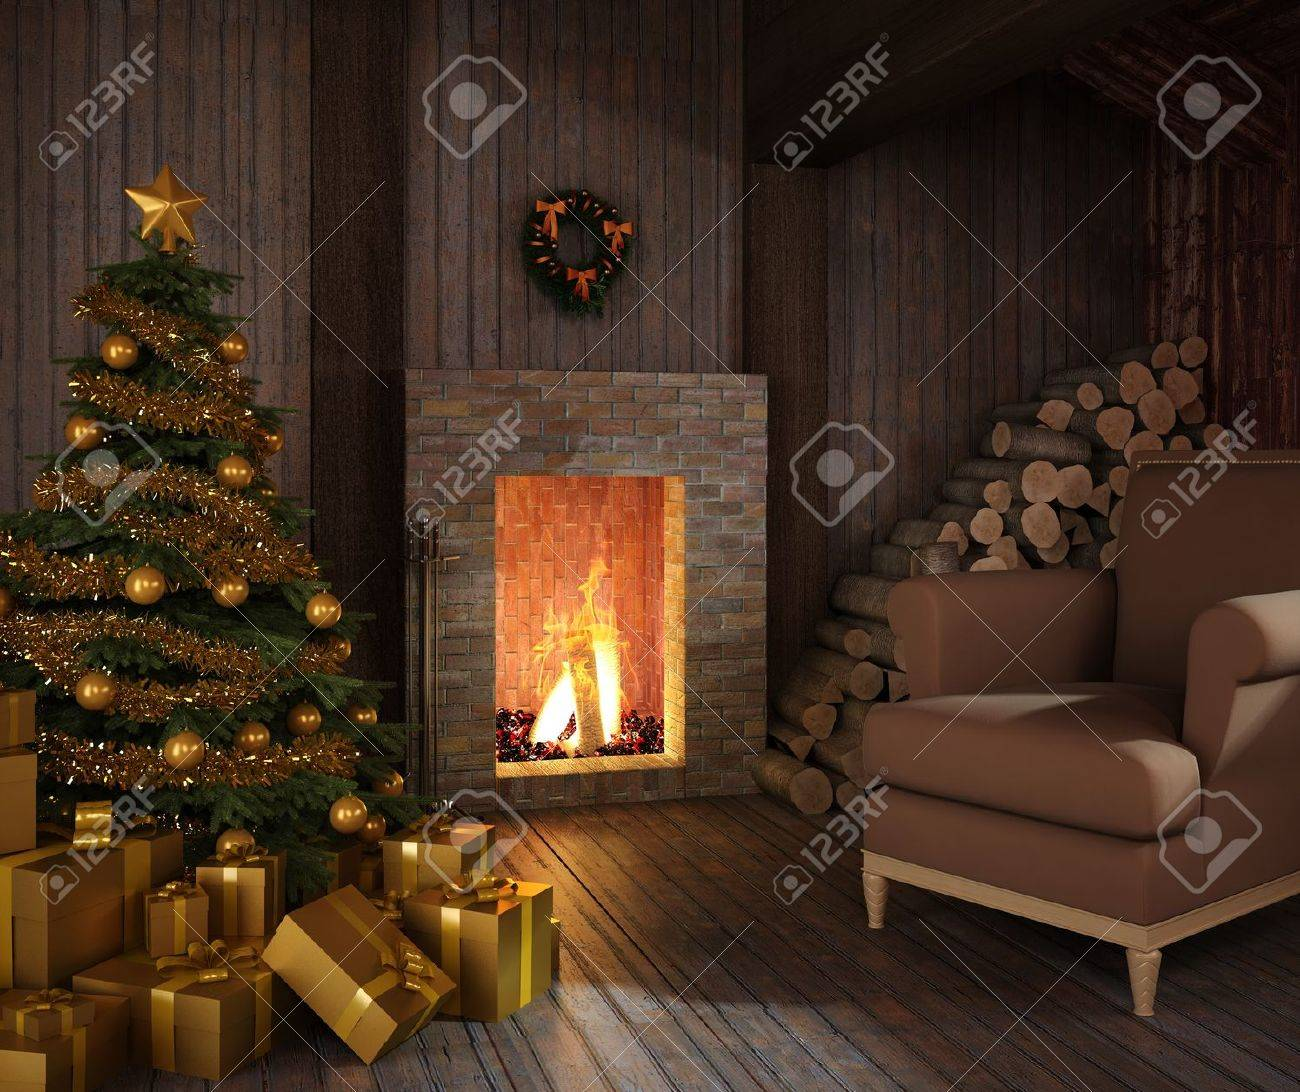 rustic christmas fireplace at night with tree, presents and couch - 8350422